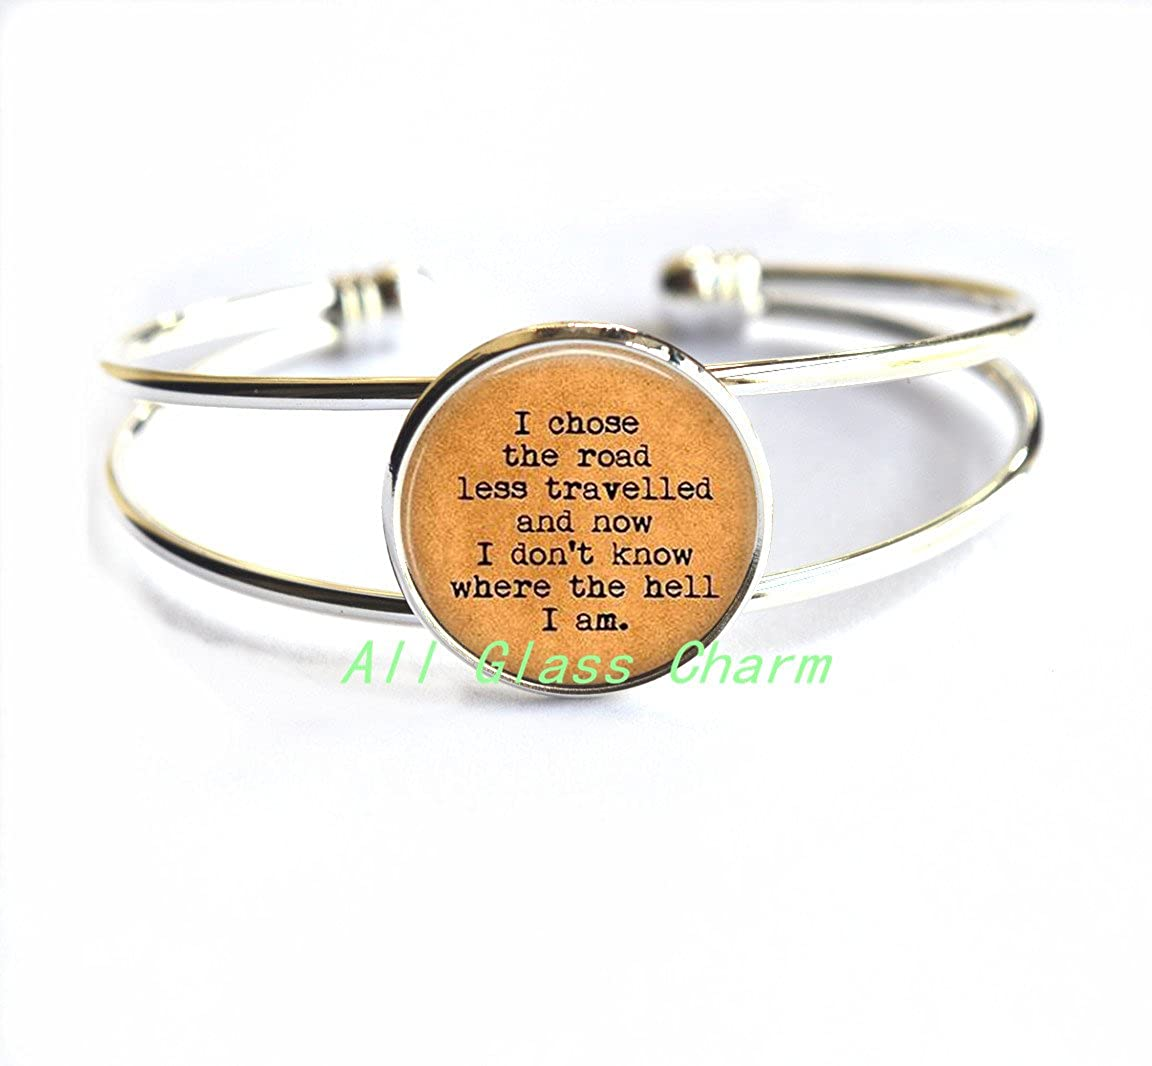 AllGlassCharm Charming Bracelet,I Chose The Road Less Travelled and Now I Don't Know Where The Hell I am,AS071